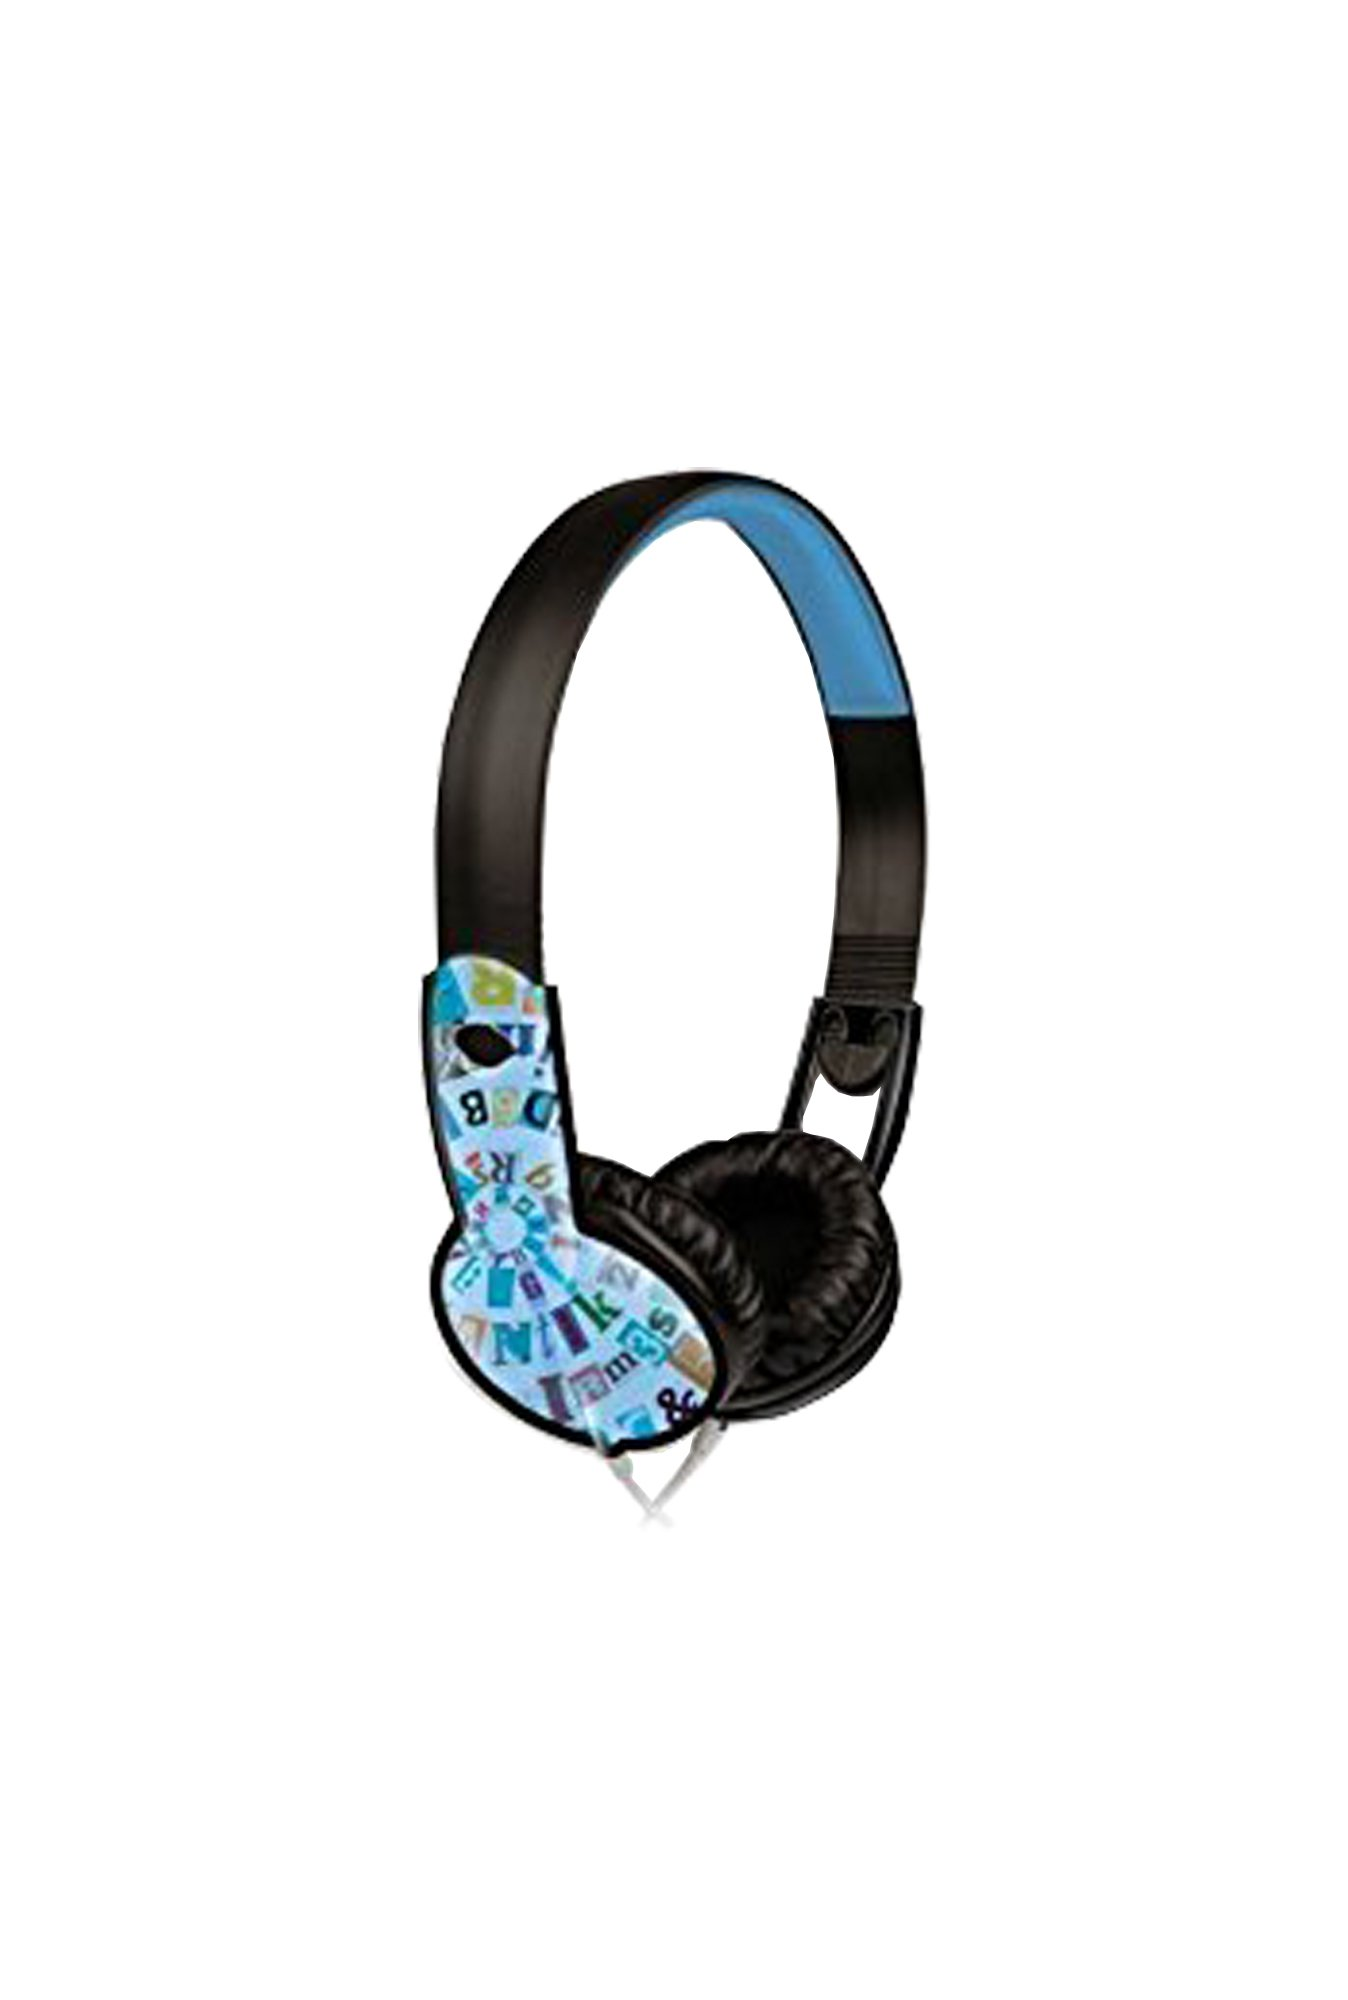 Maxell 190297 Safe Soundz Overear Headphones- Blue